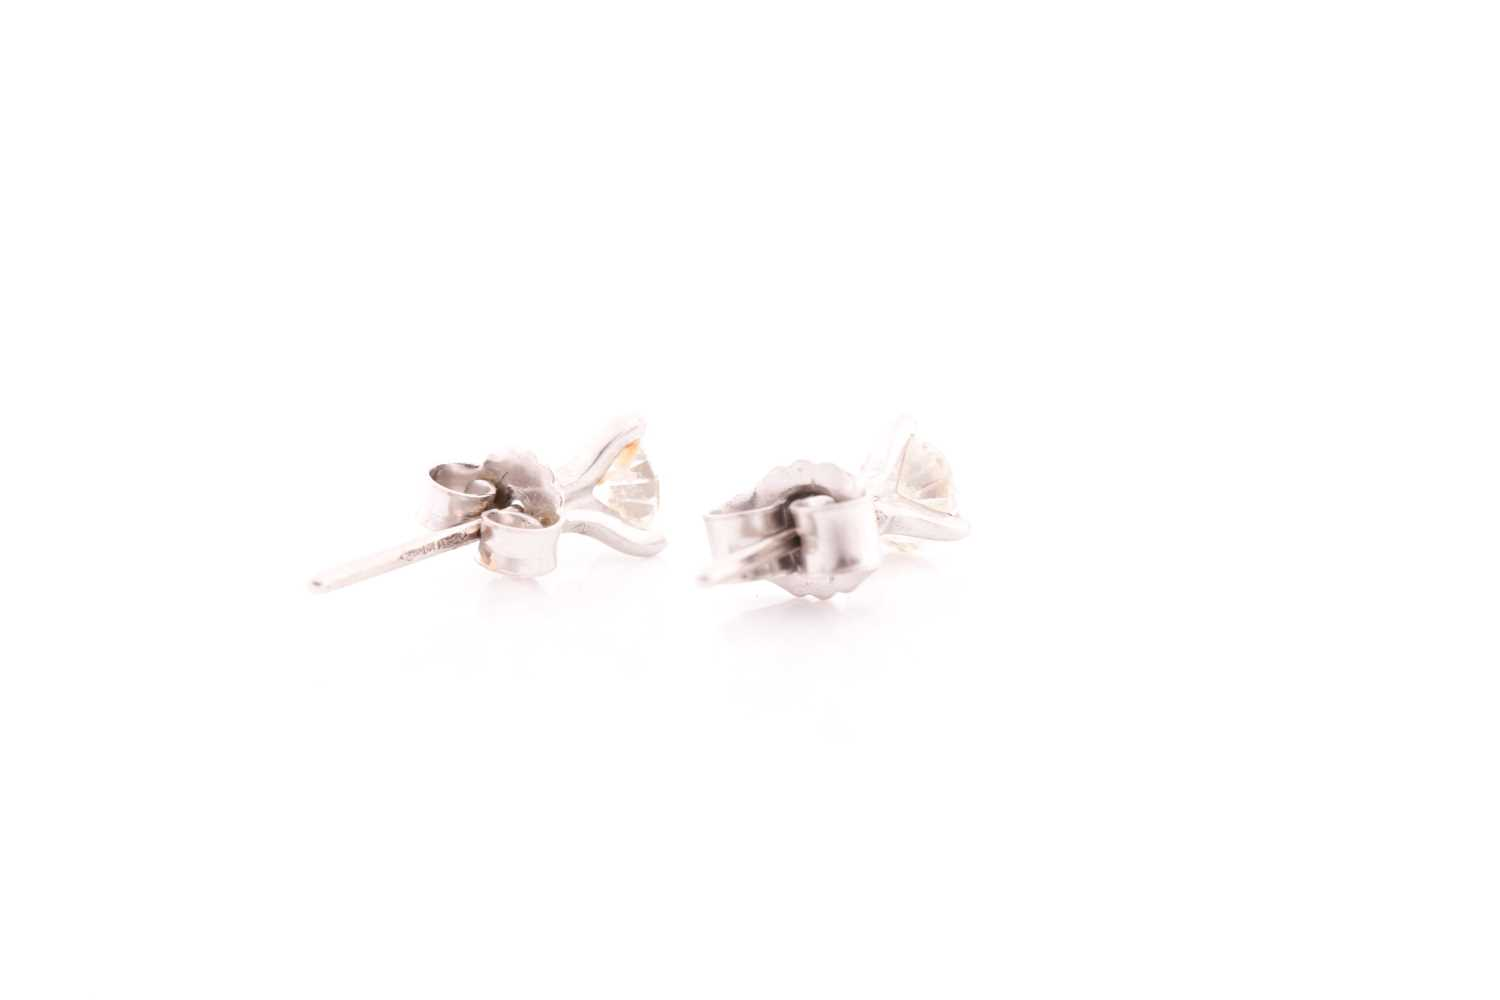 A pair of solitaire diamond stud earrings, set with round brilliant-cut diamonds of approximately - Image 3 of 3